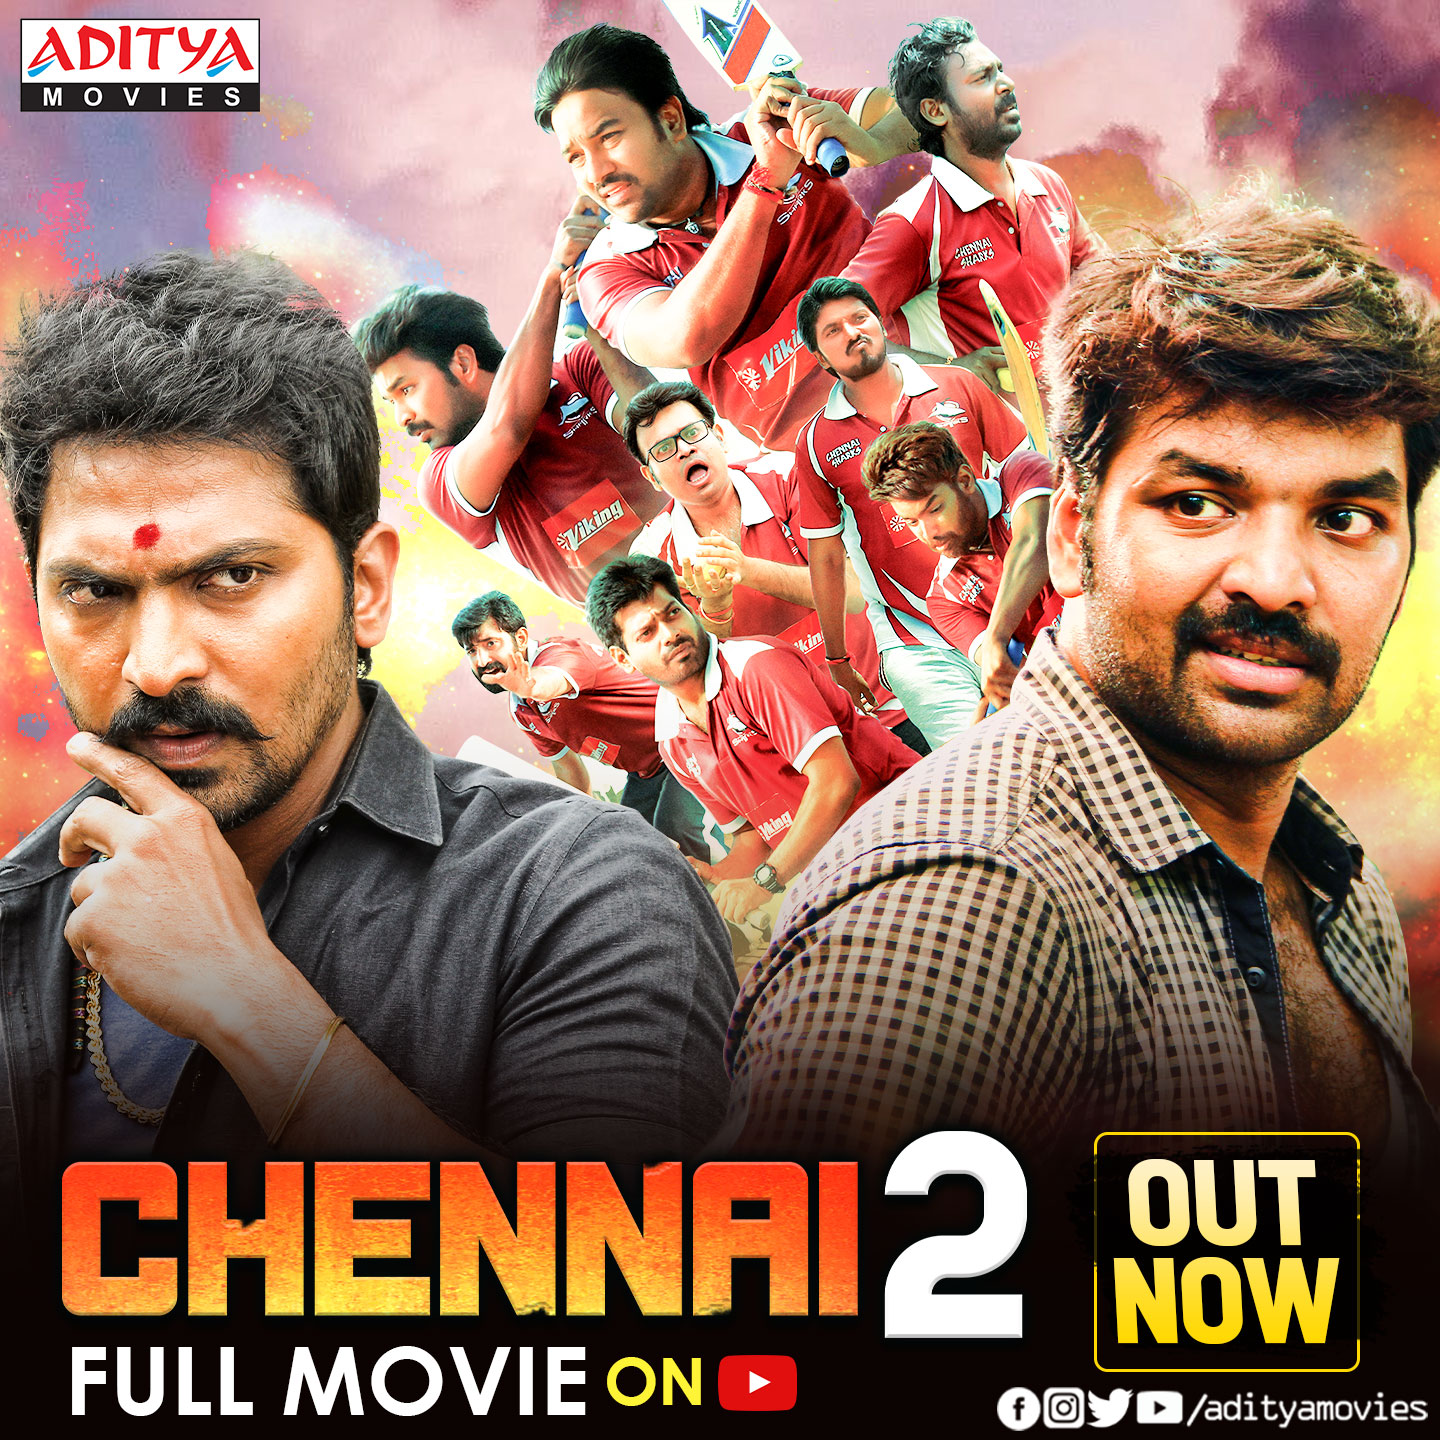 Chennai 2 (Chennai 600028 II) 2021 Hindi Dubbed 1080p HDRip 1920MB Download